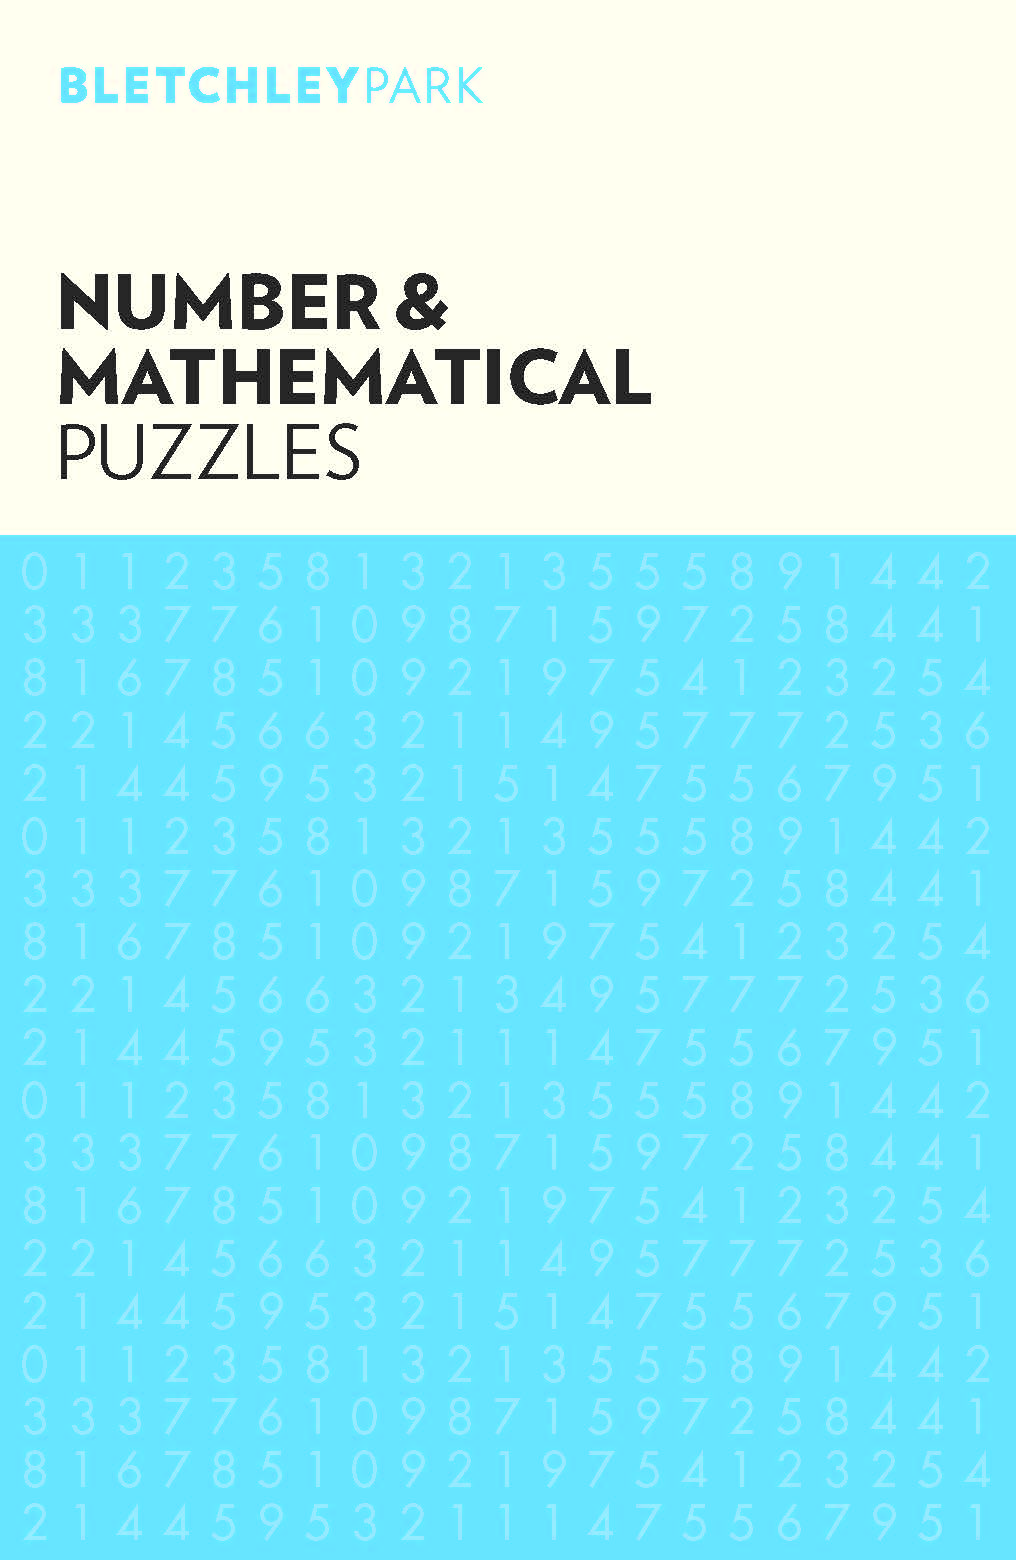 Bletchley number puzzles